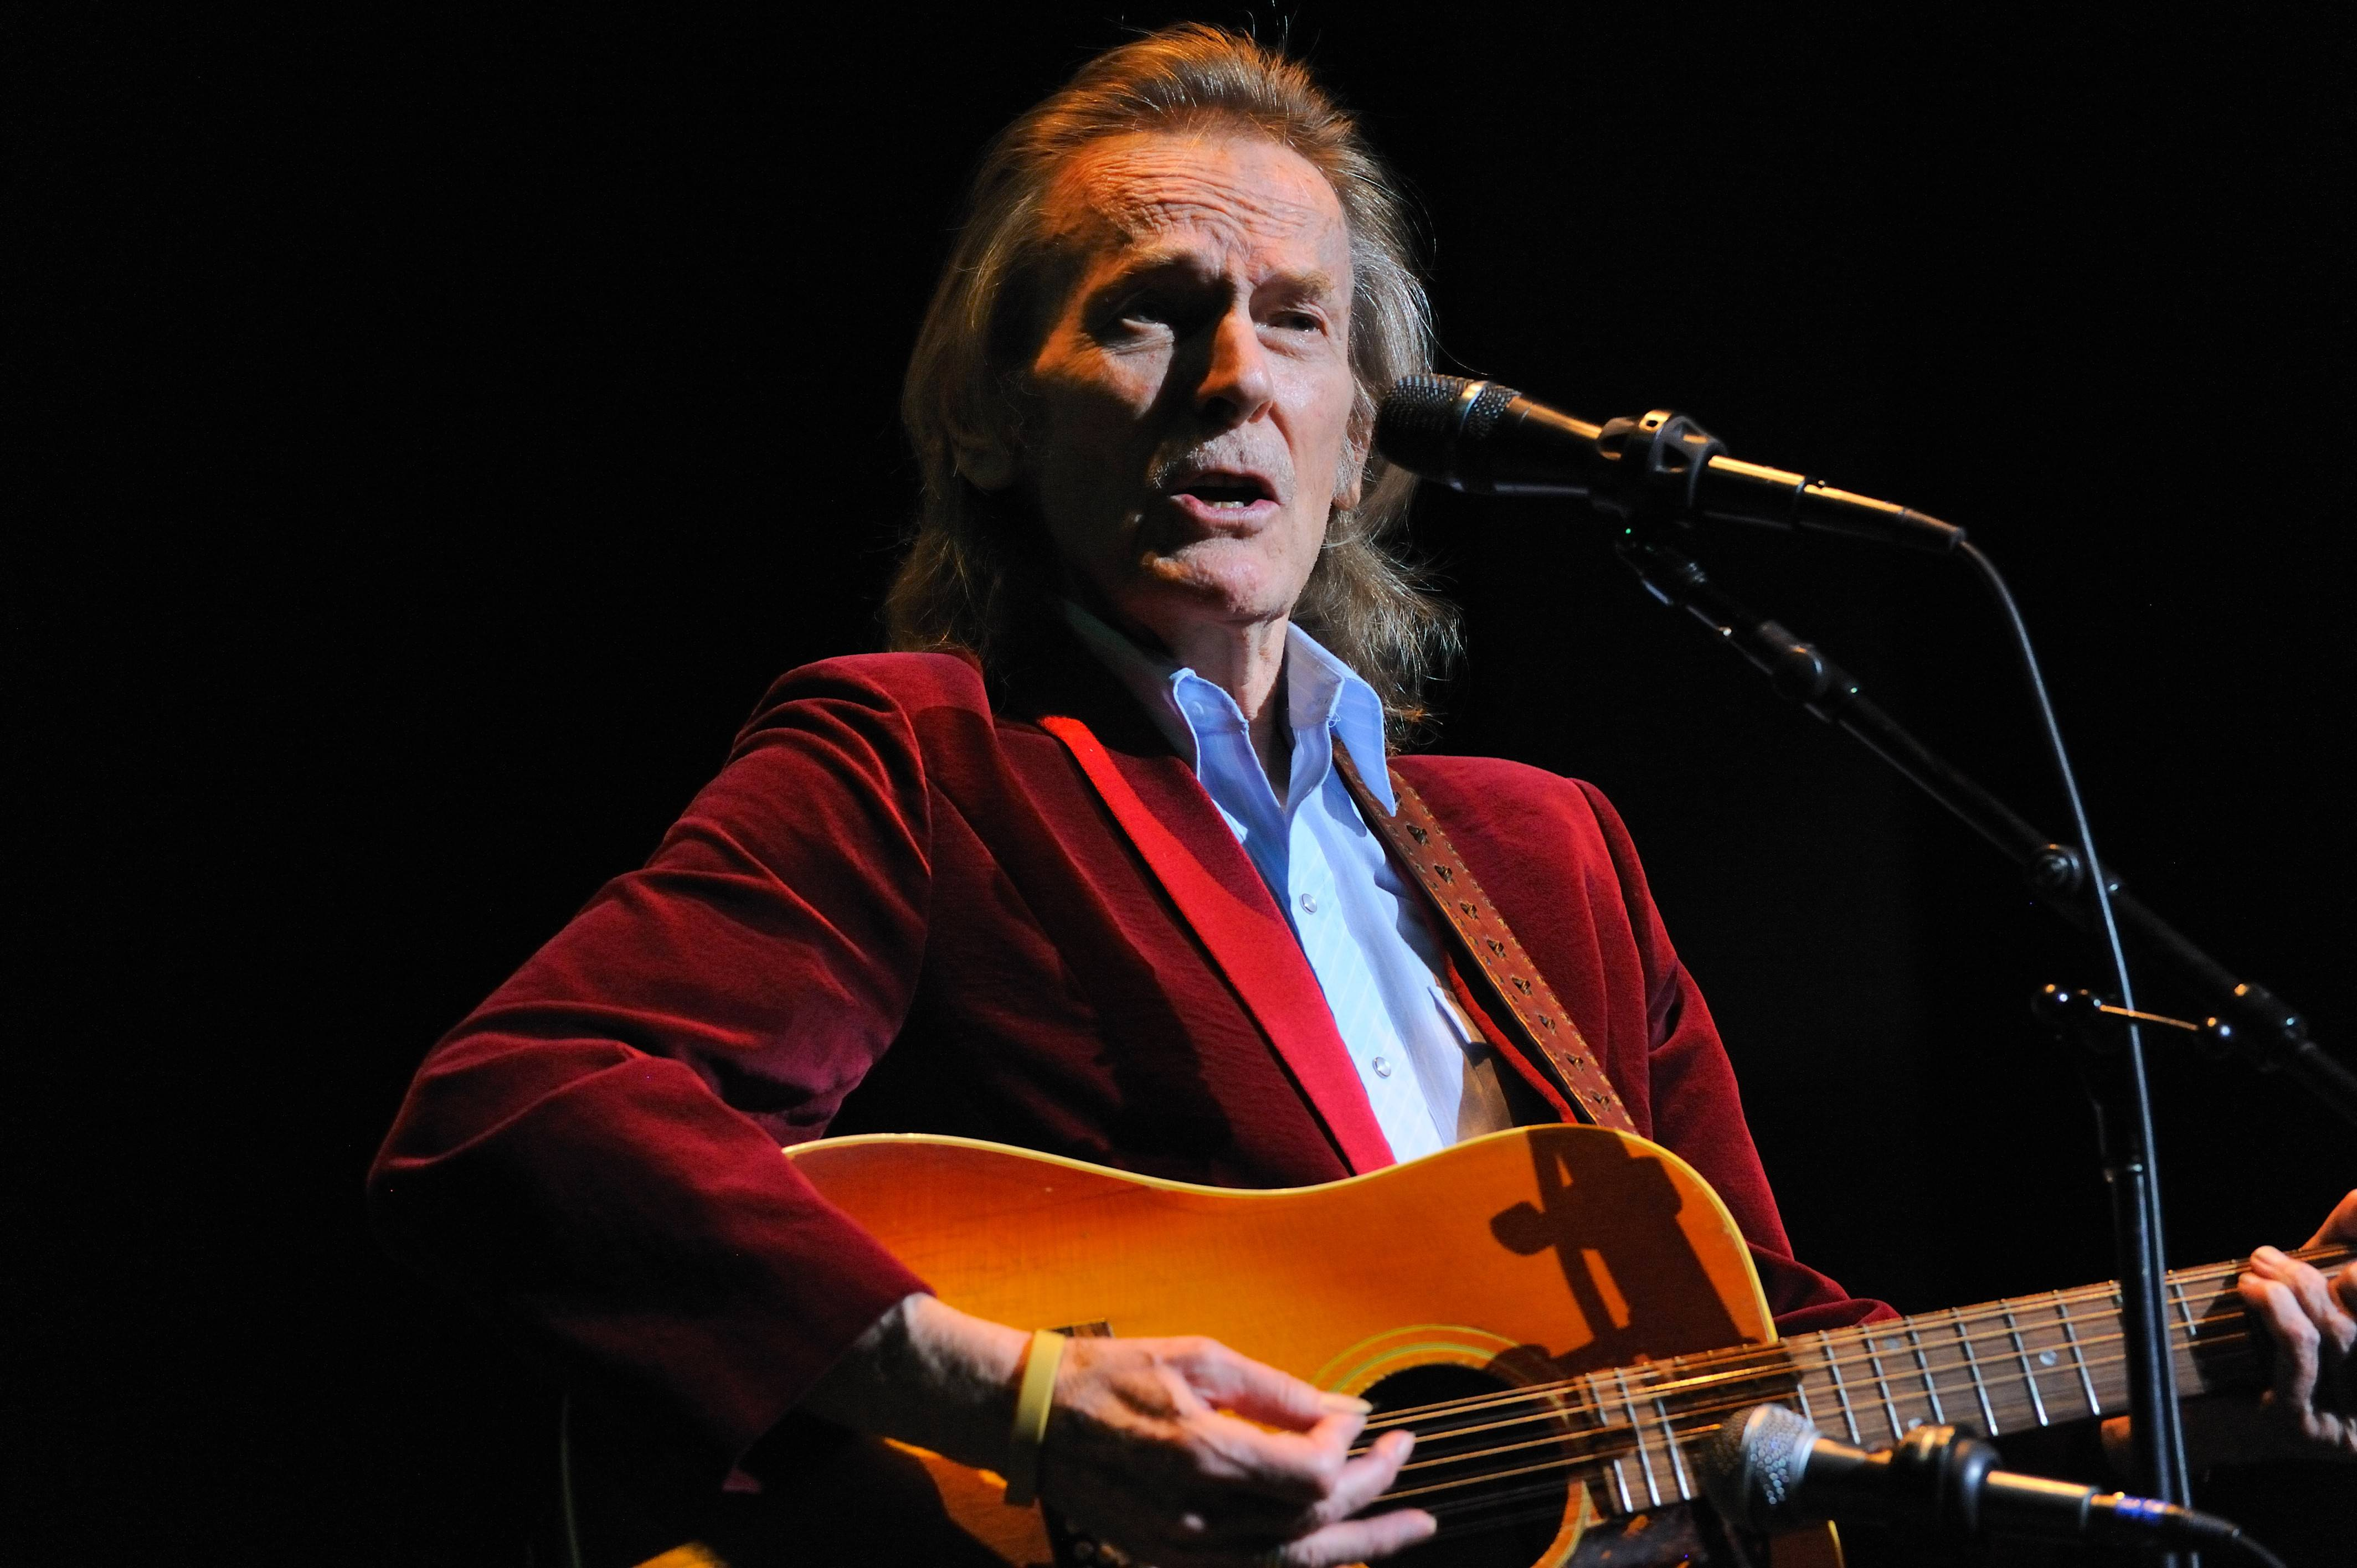 Folk musician Gordon Lightfoot is playing at the Genessee Theatre on Friday, June 21 at 8 p.m.